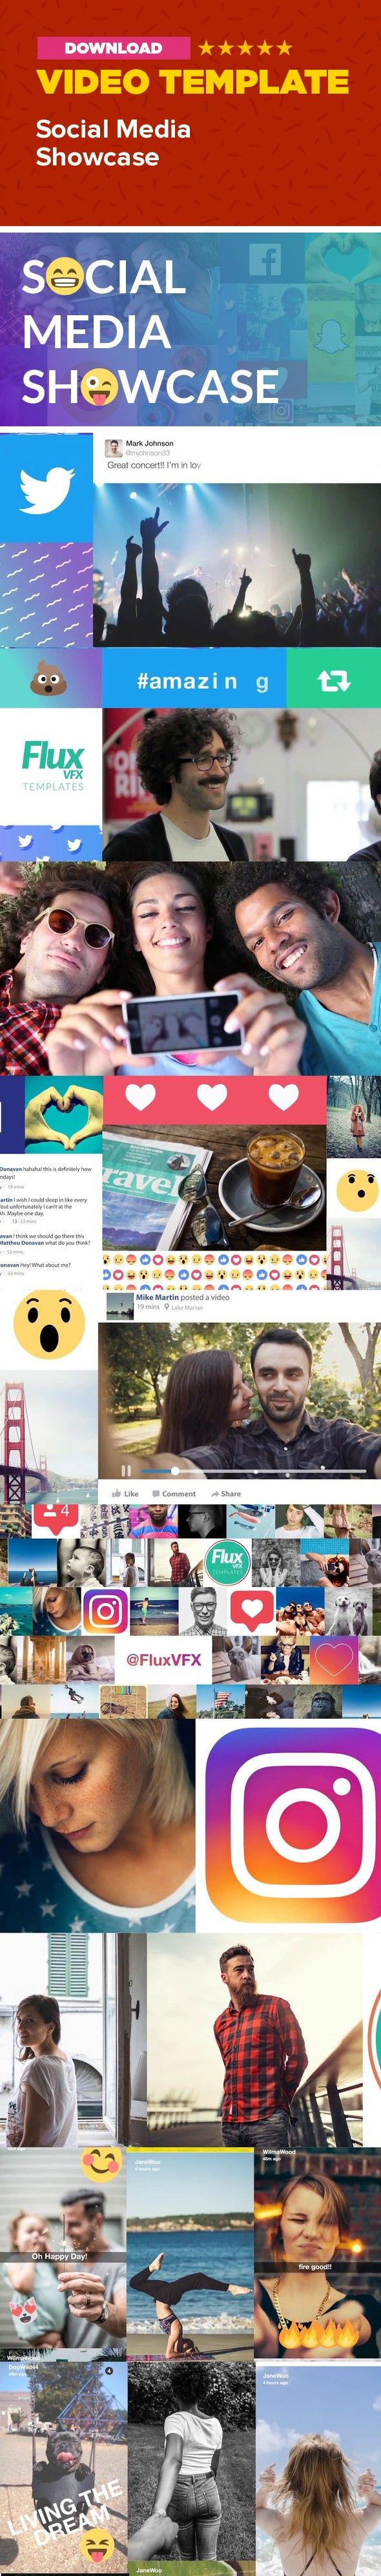 facebook, follow, grid, instagram, intro, montage, opener, showcase, slideshow, snapchat, social media, twitter, video Social Media Showcase After Effects Template      Use the Social Media Showcase to invite customers, viewers, and friends to follow your social media accounts!  The modular project file lets you re-arrange the social media scenes- Facebook, Twitter, Snapchat and Instagram. Everything can be edited.  Use the last full screen animations to show your user name for each…